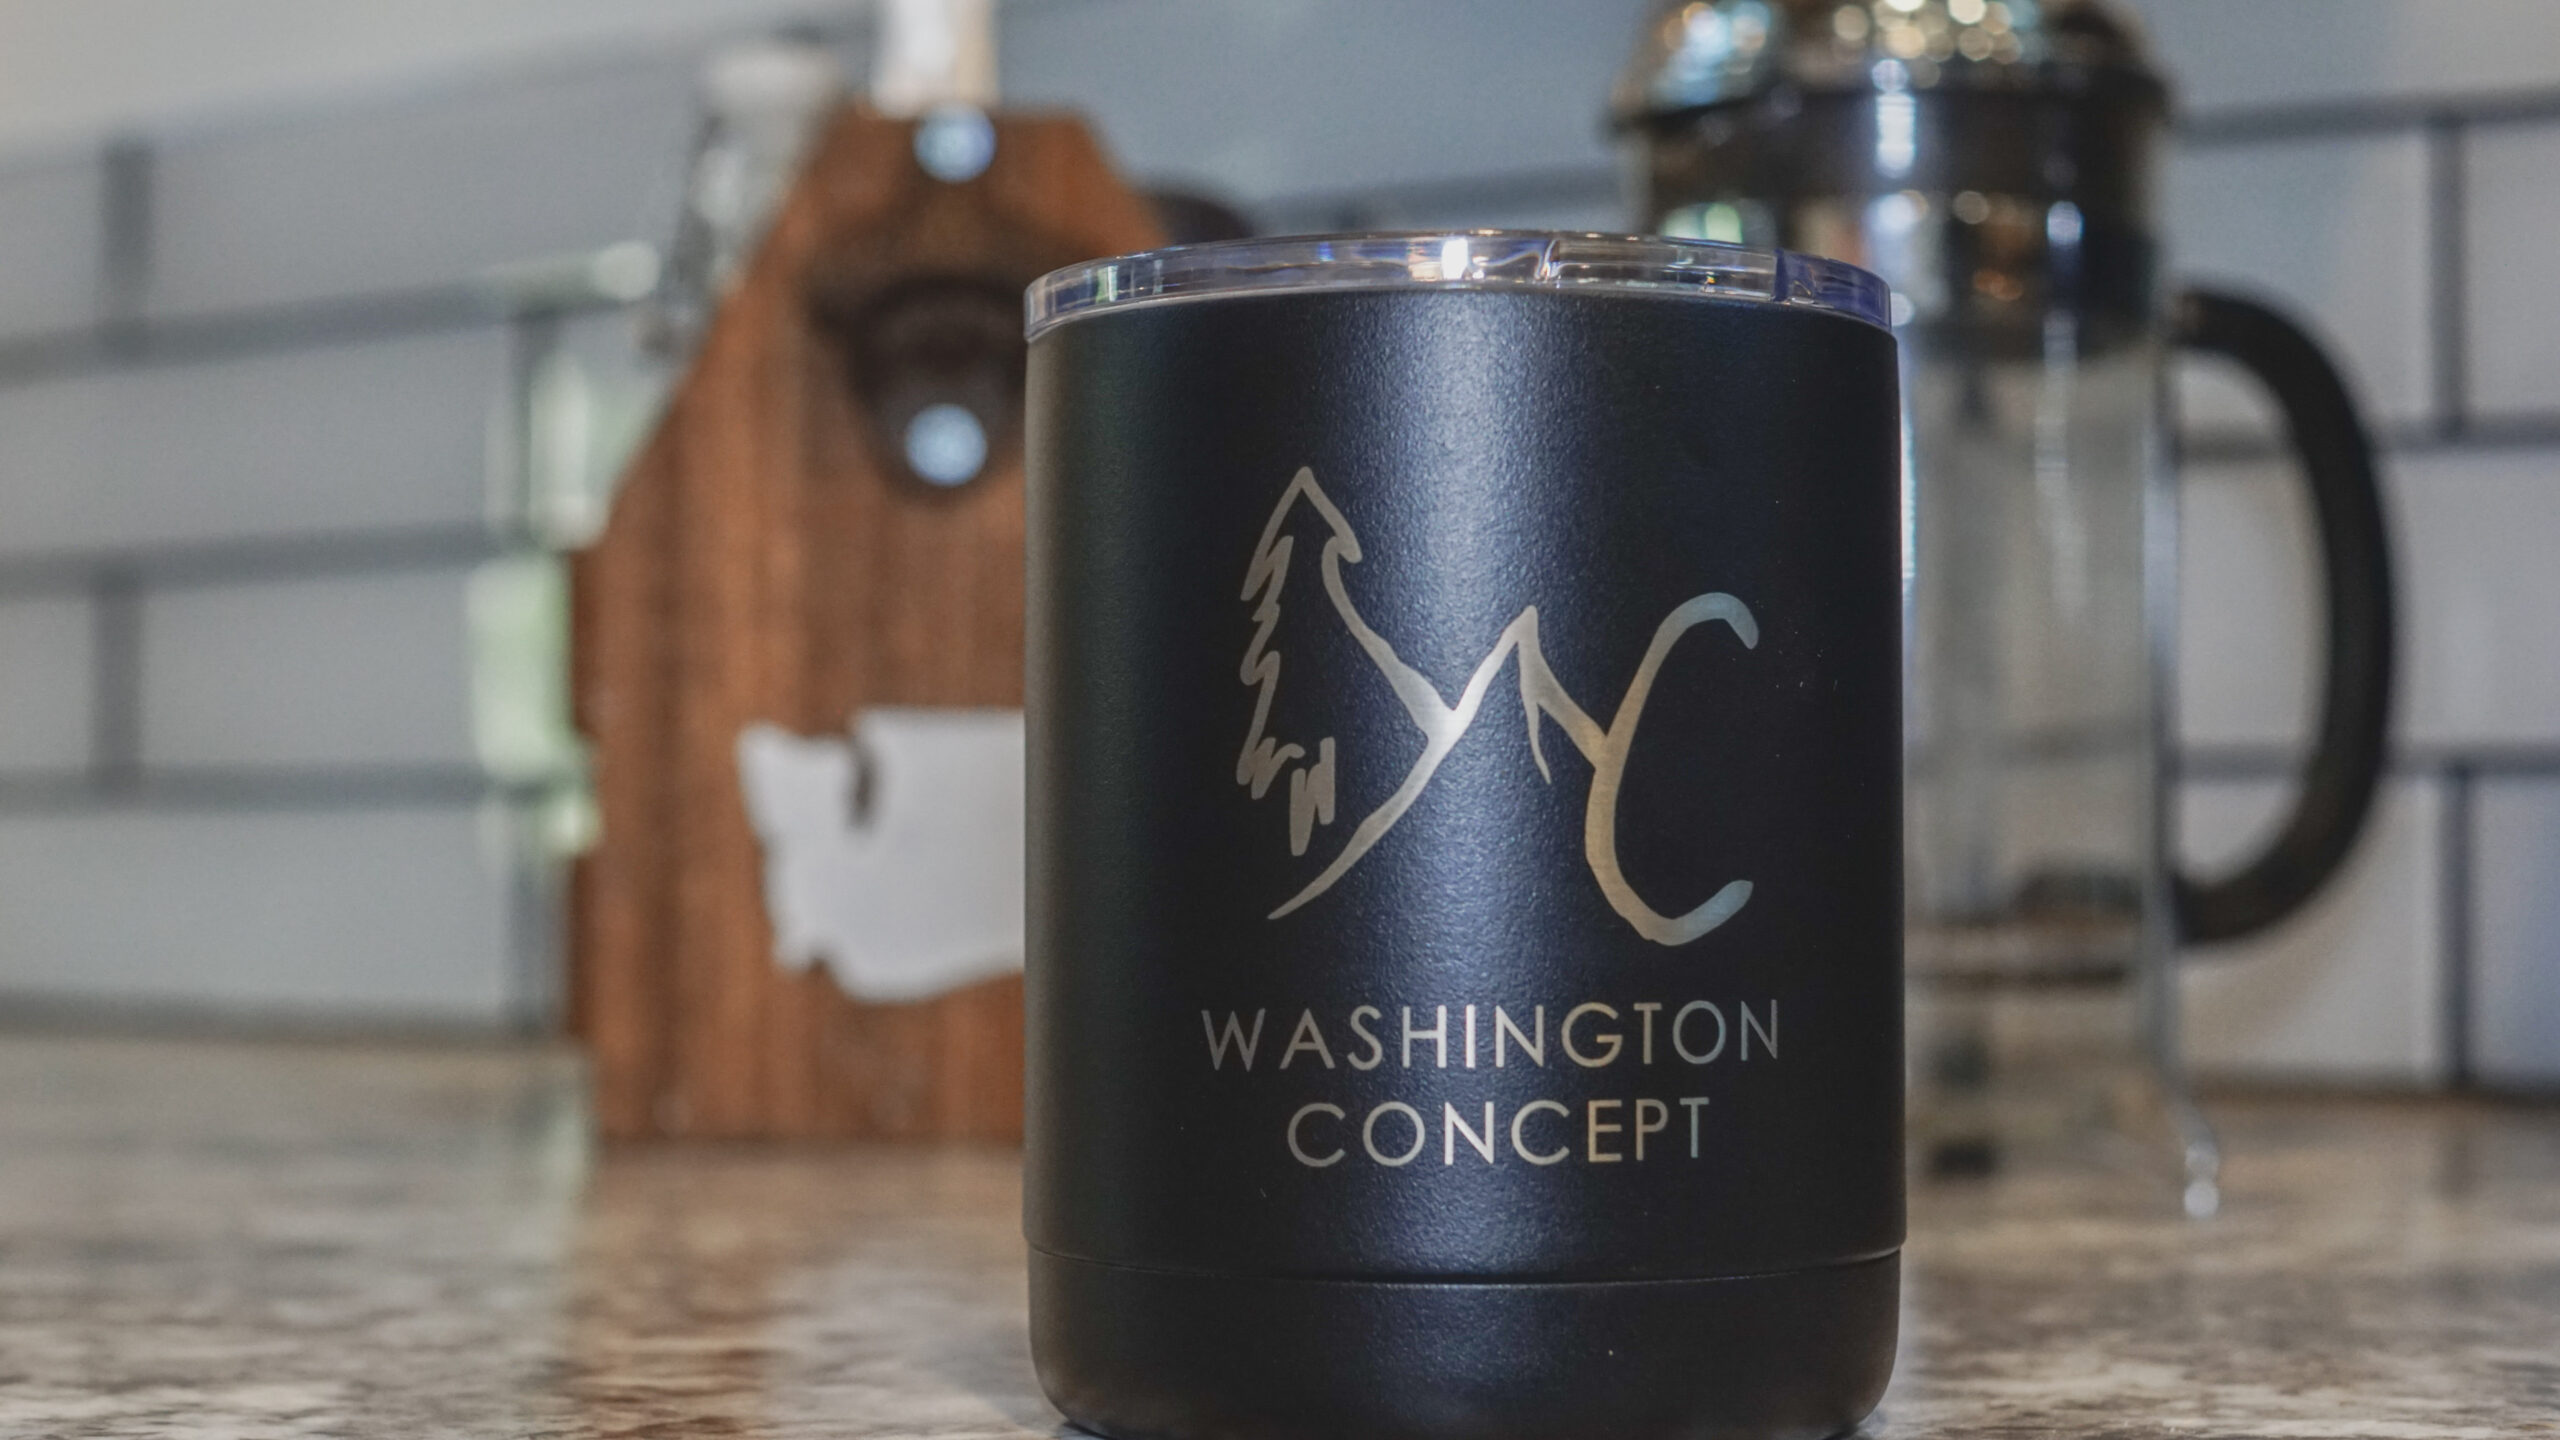 Washington Concept Tumbler